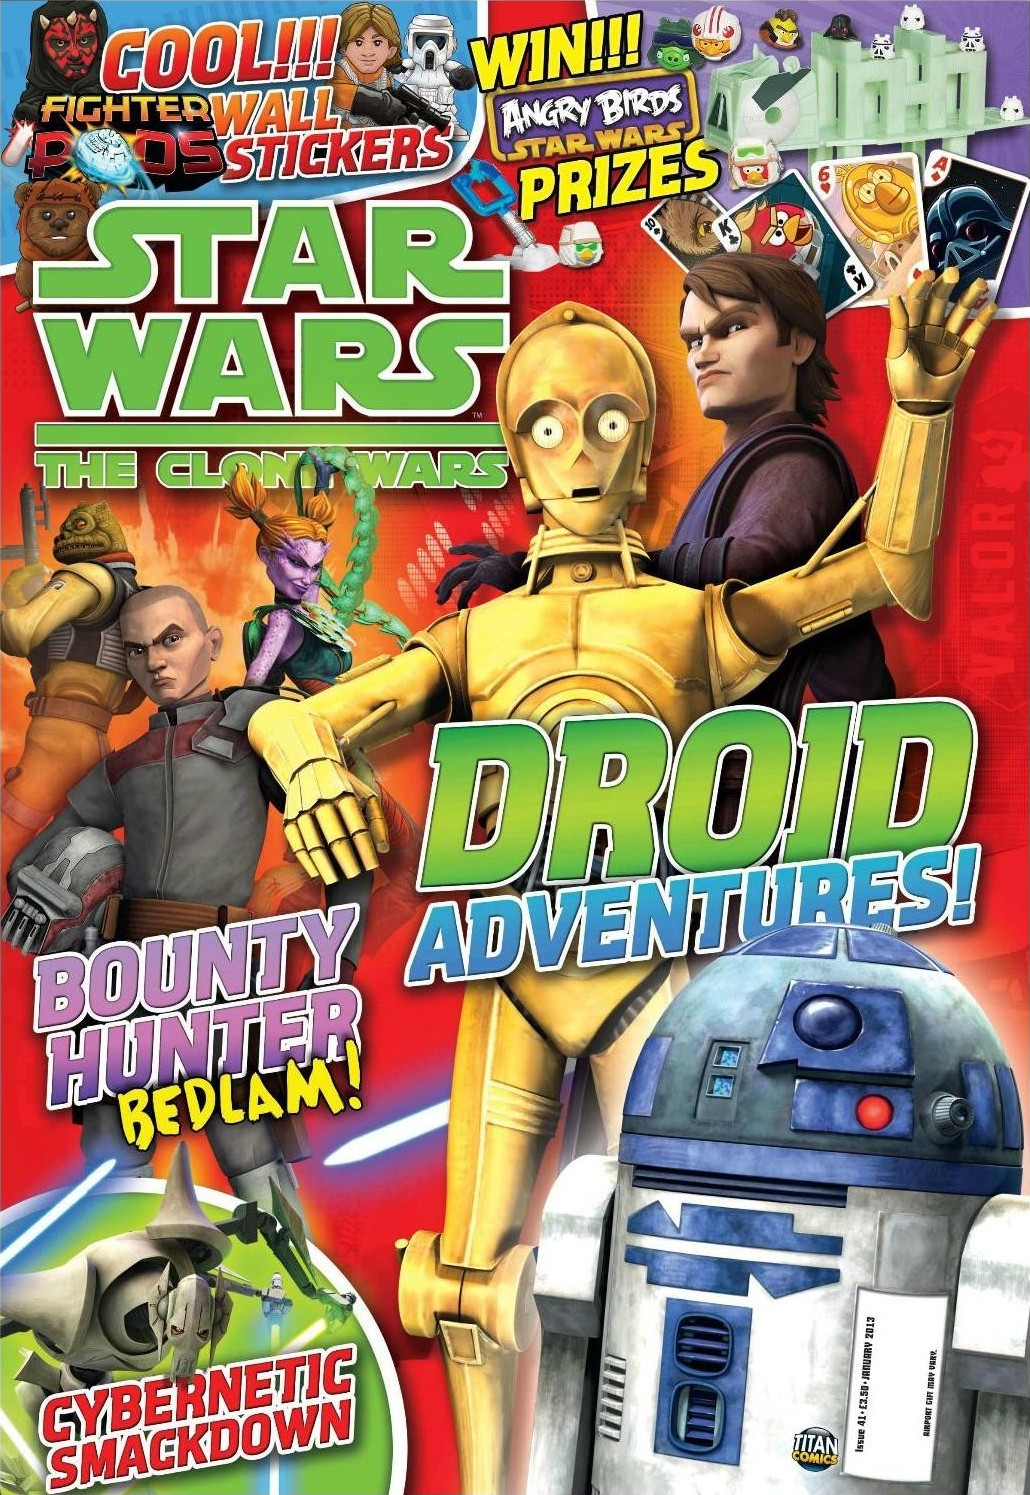 Star Wars: The Clone Wars Comic UK 6.41